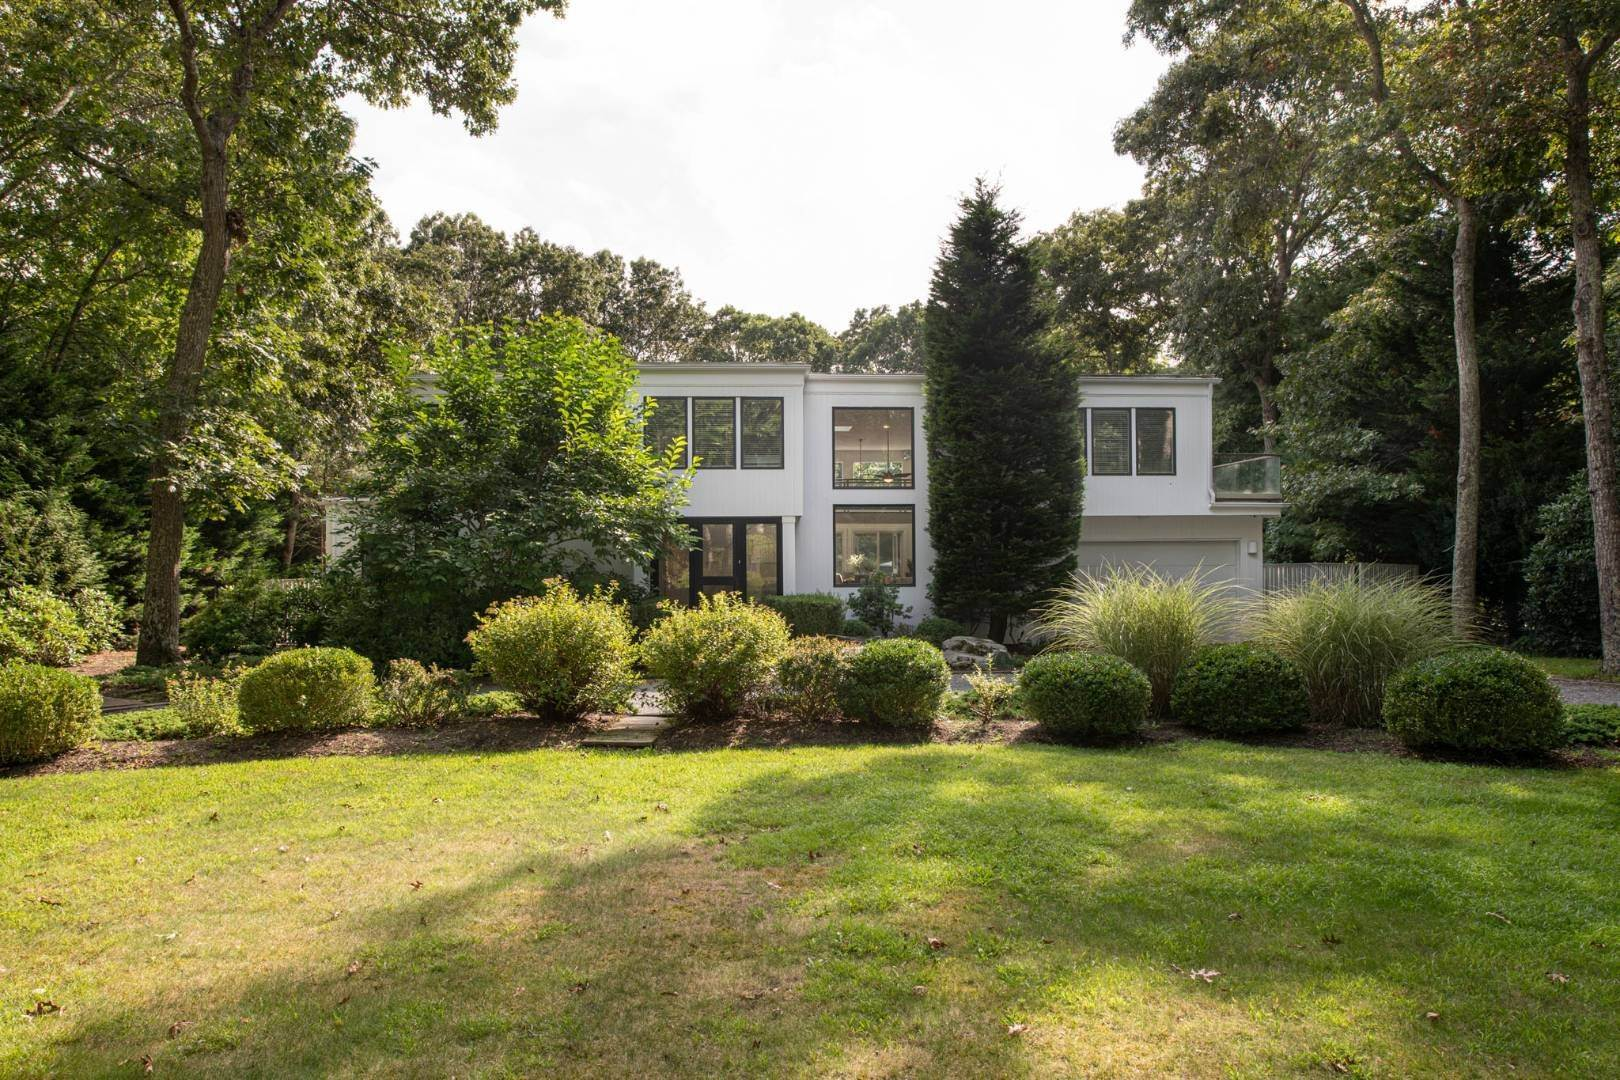 Single Family Home for Sale at Modern Retreat Close To East Hampton Village & Ocean Beaches 15 Anvil Ct, East Hampton, NY 11937